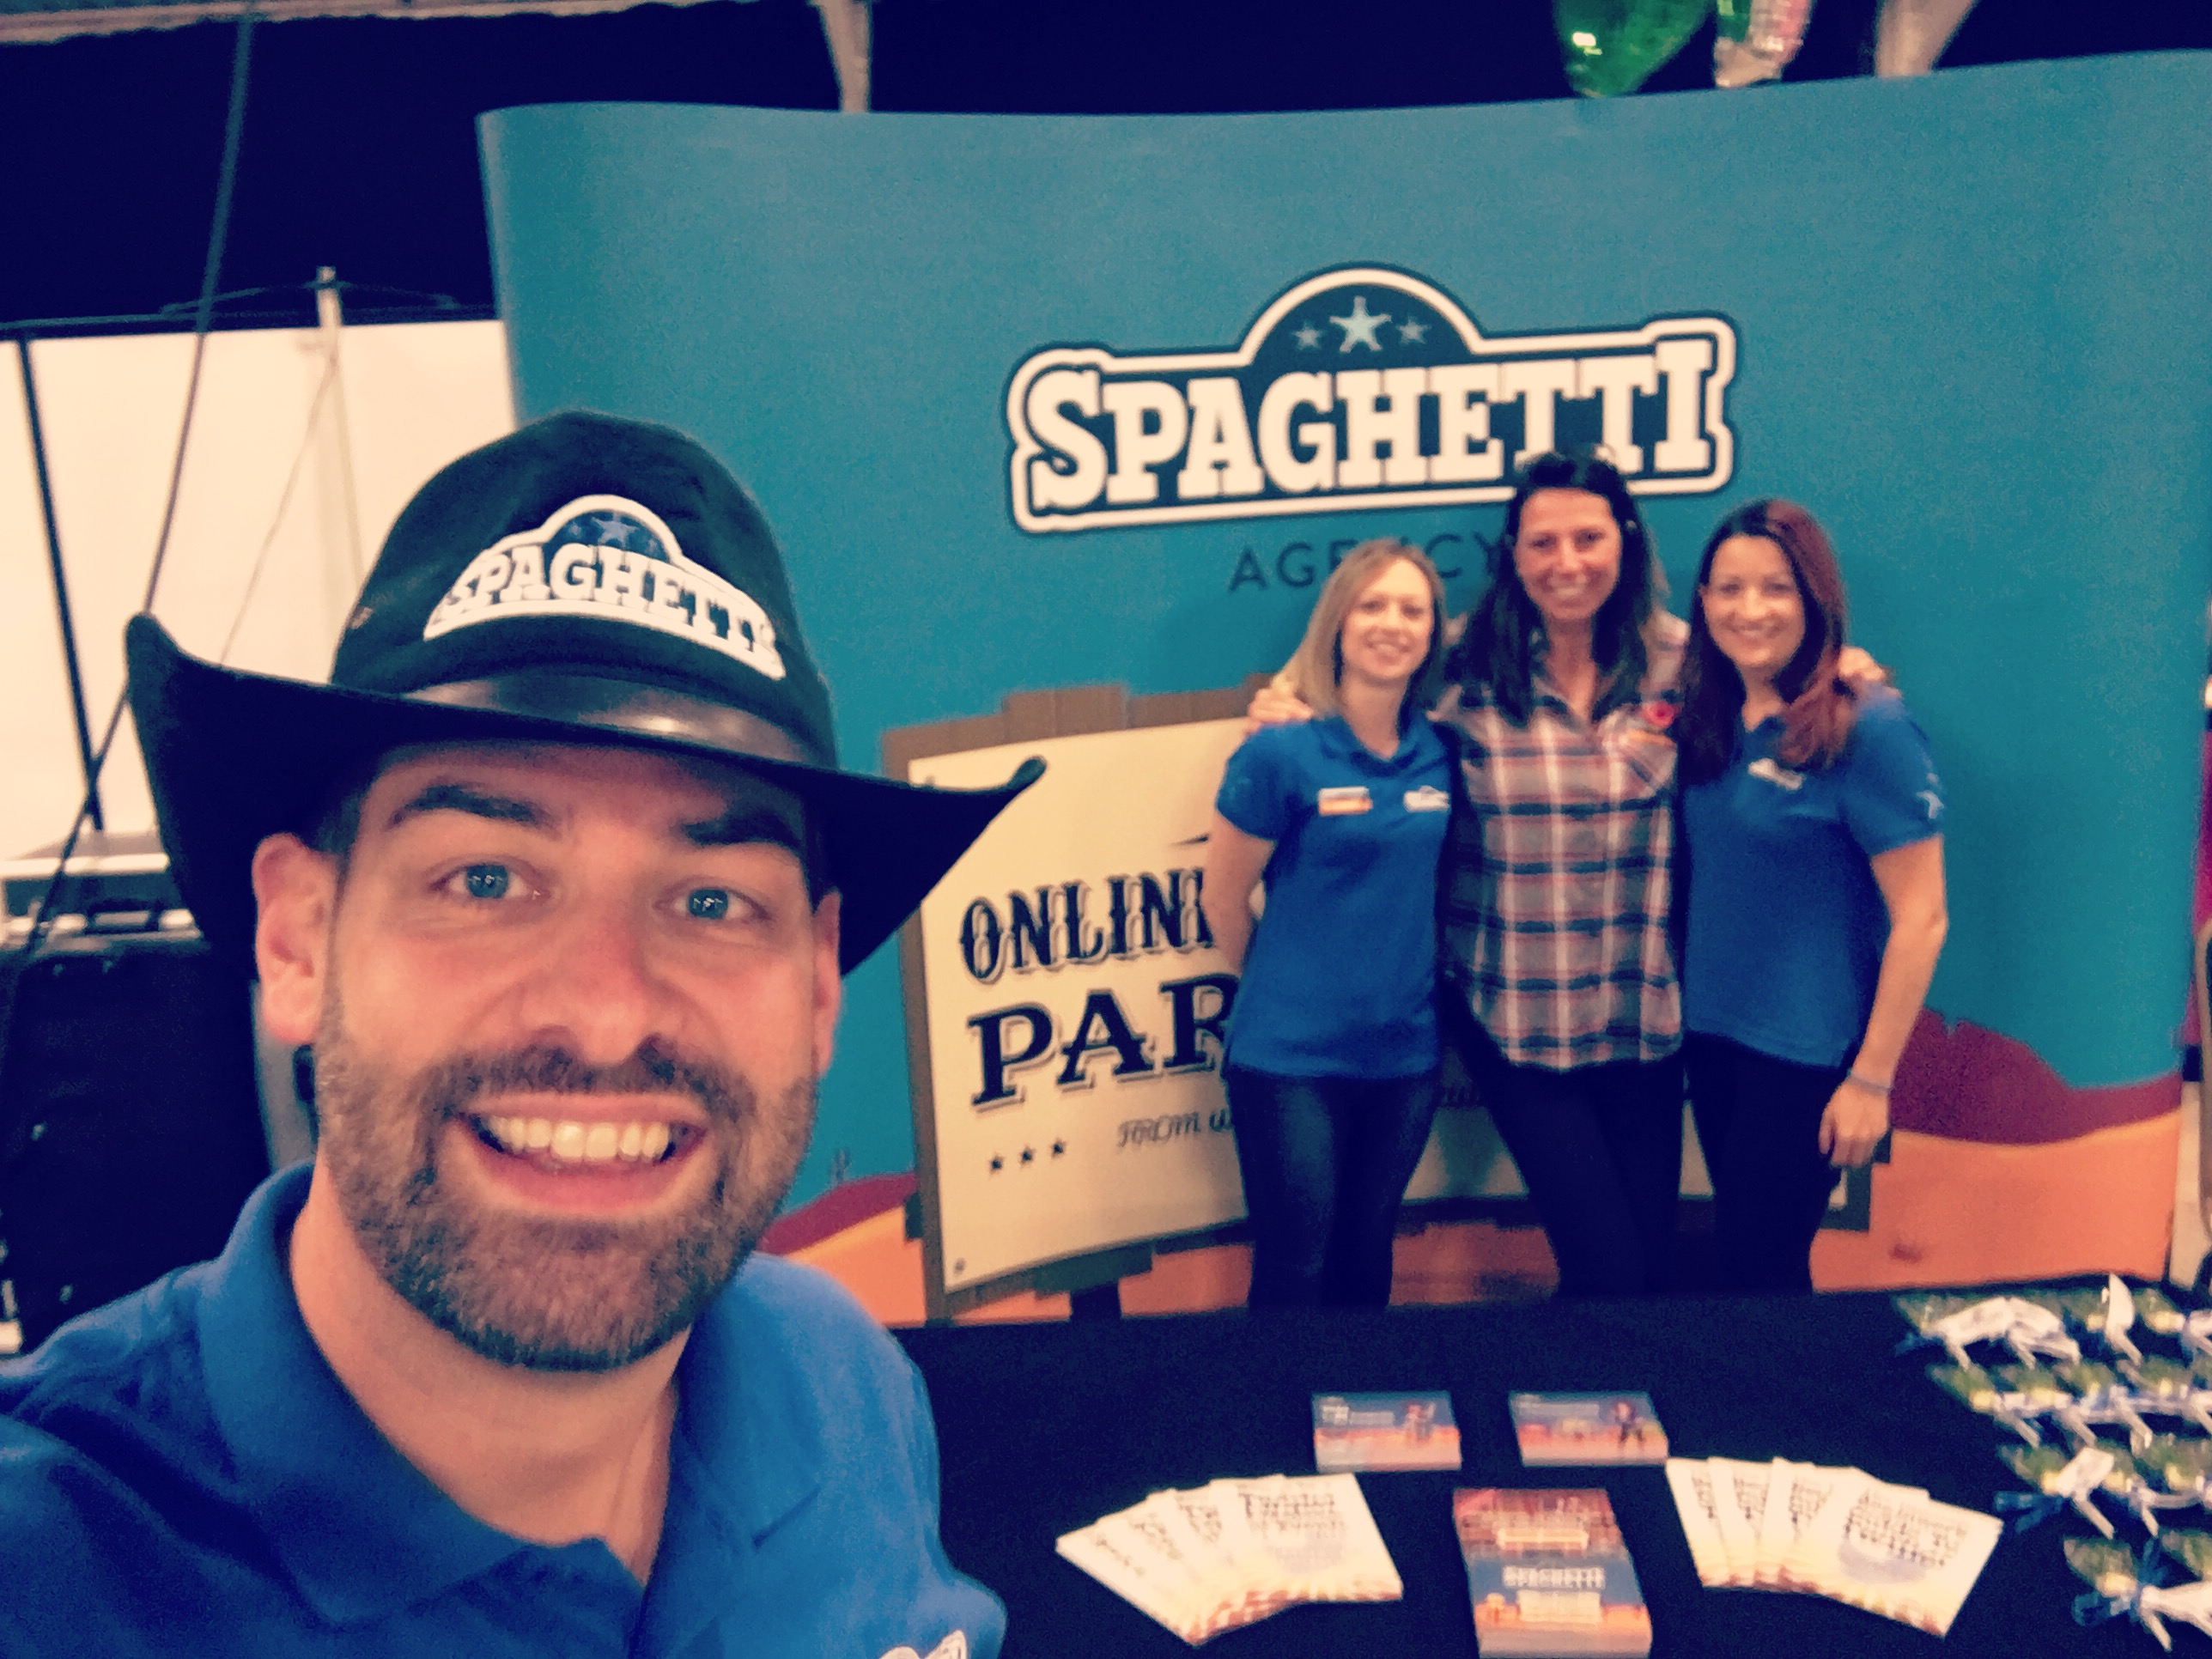 Spaghetti Agency at the Coventry and Warwickshire Chamber Expo 2016